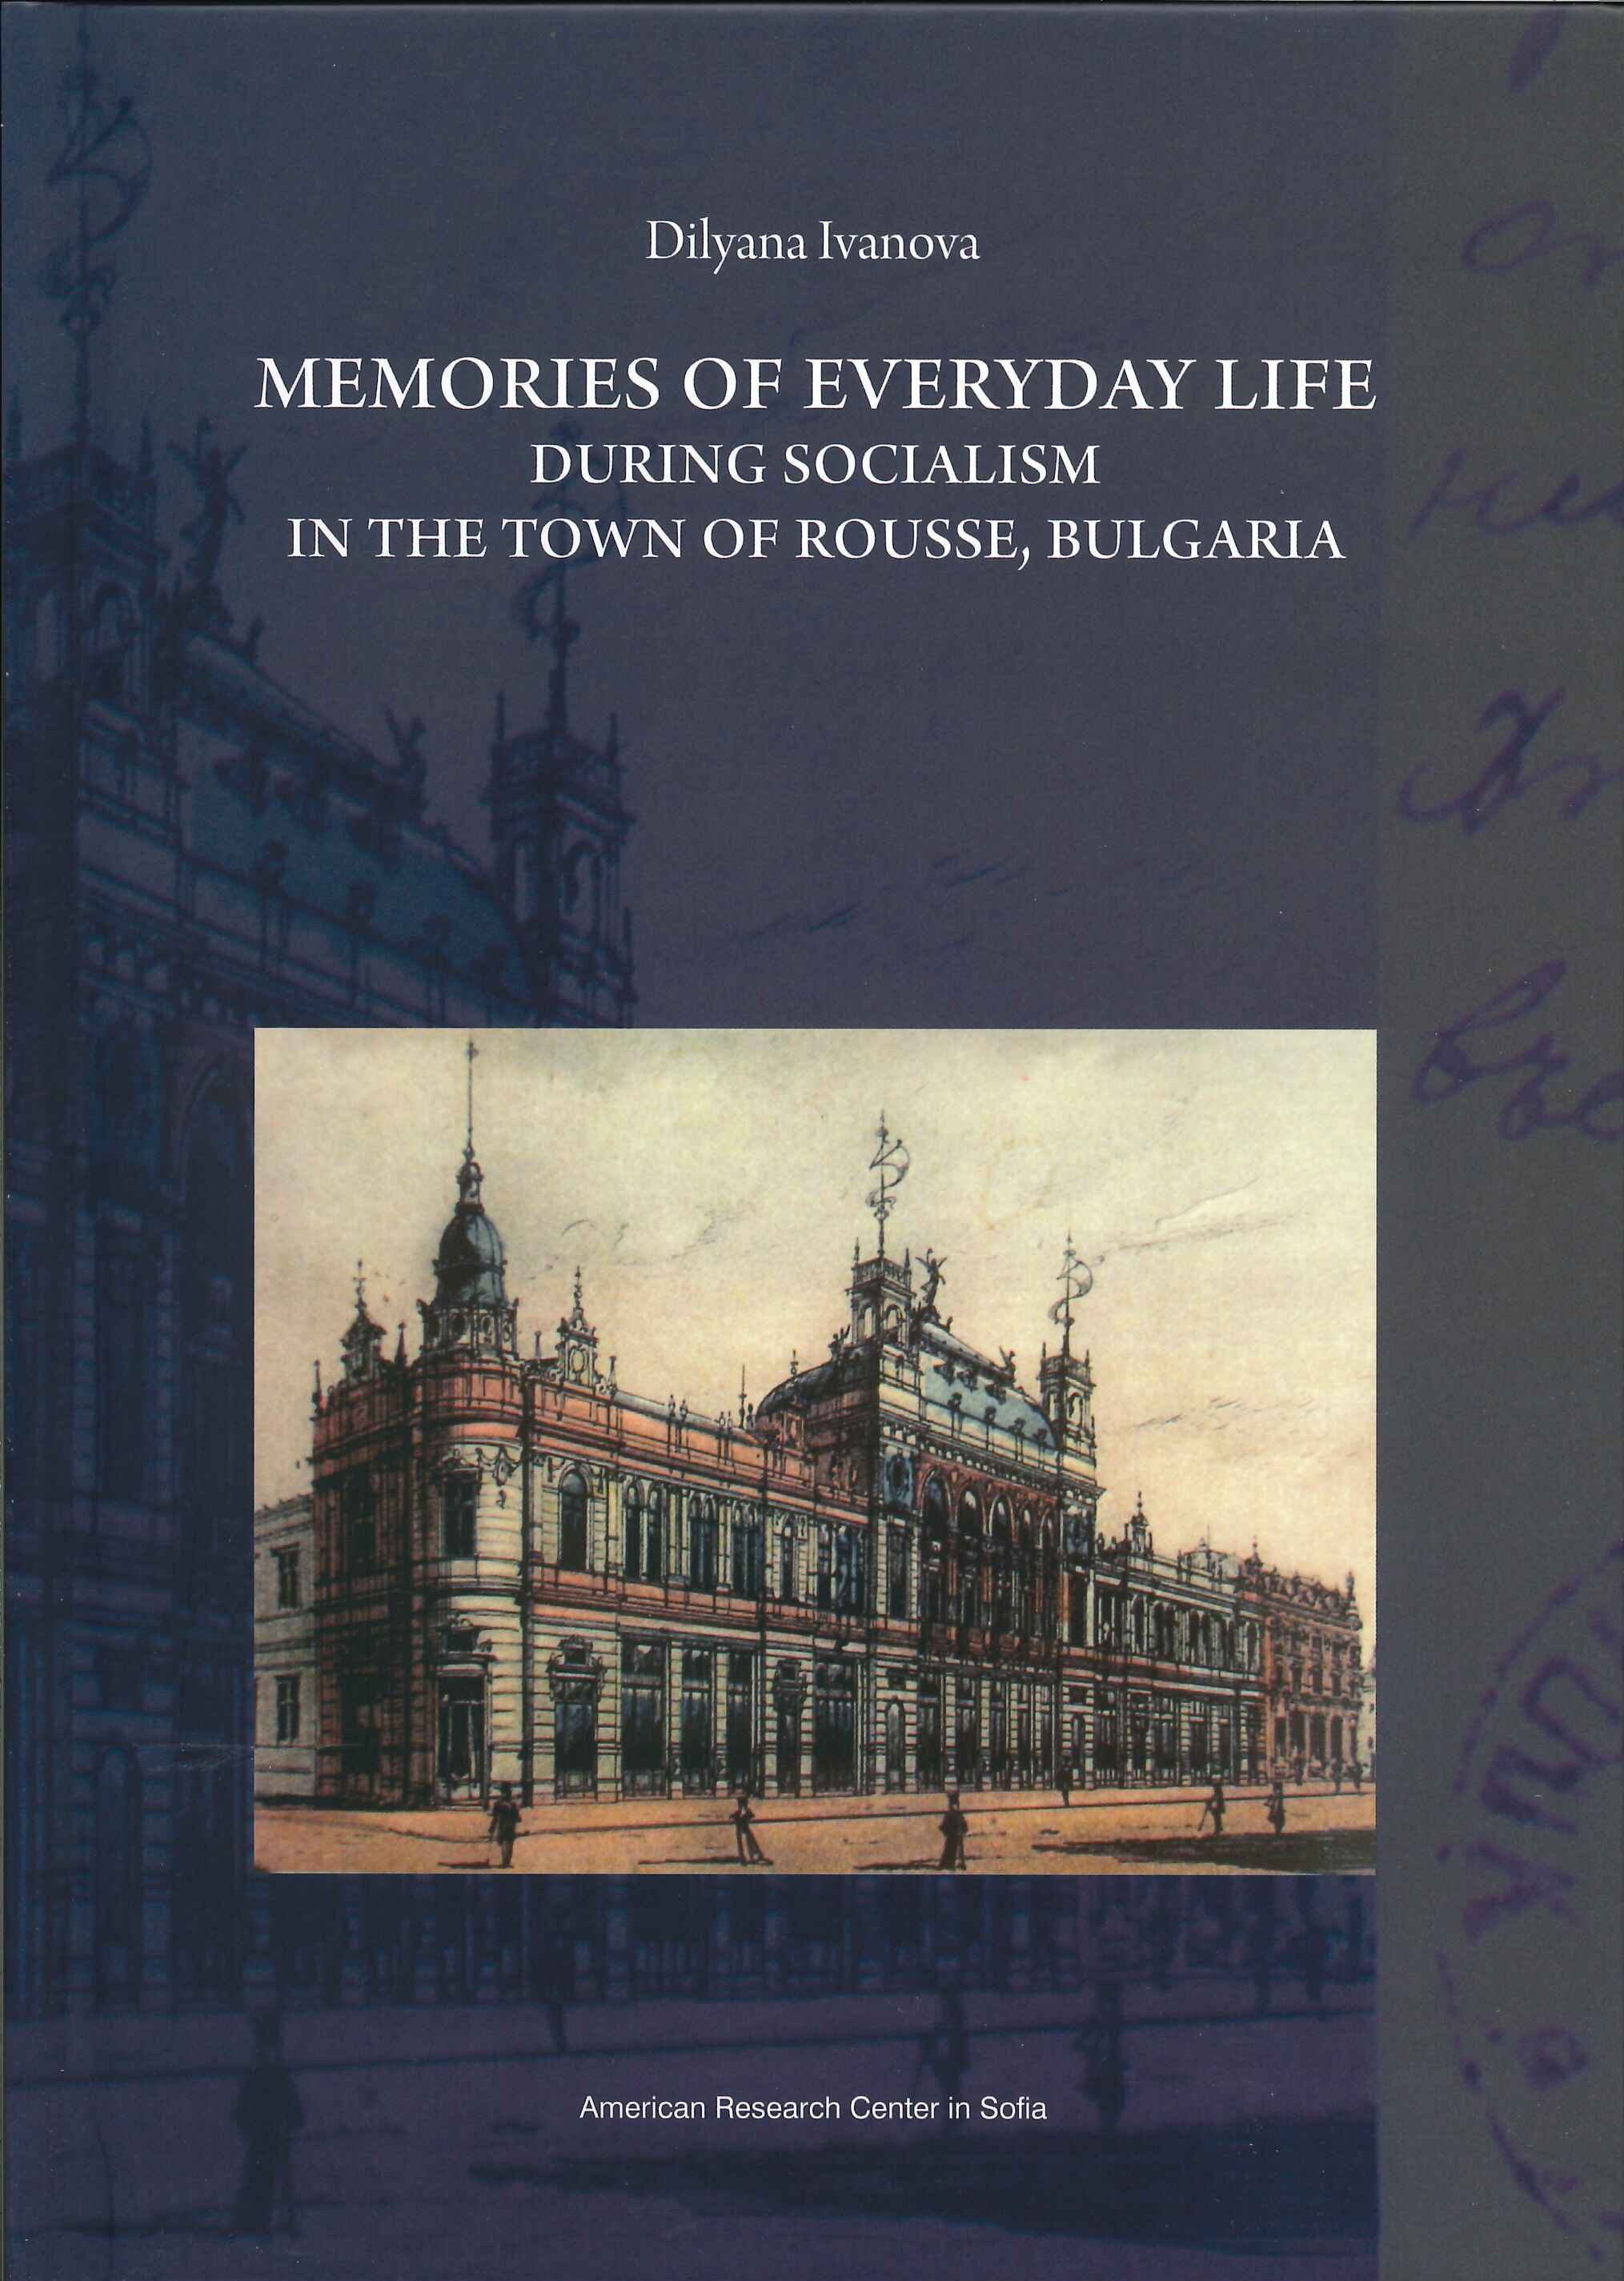 Aspects of everyday life where memory research can be applied?